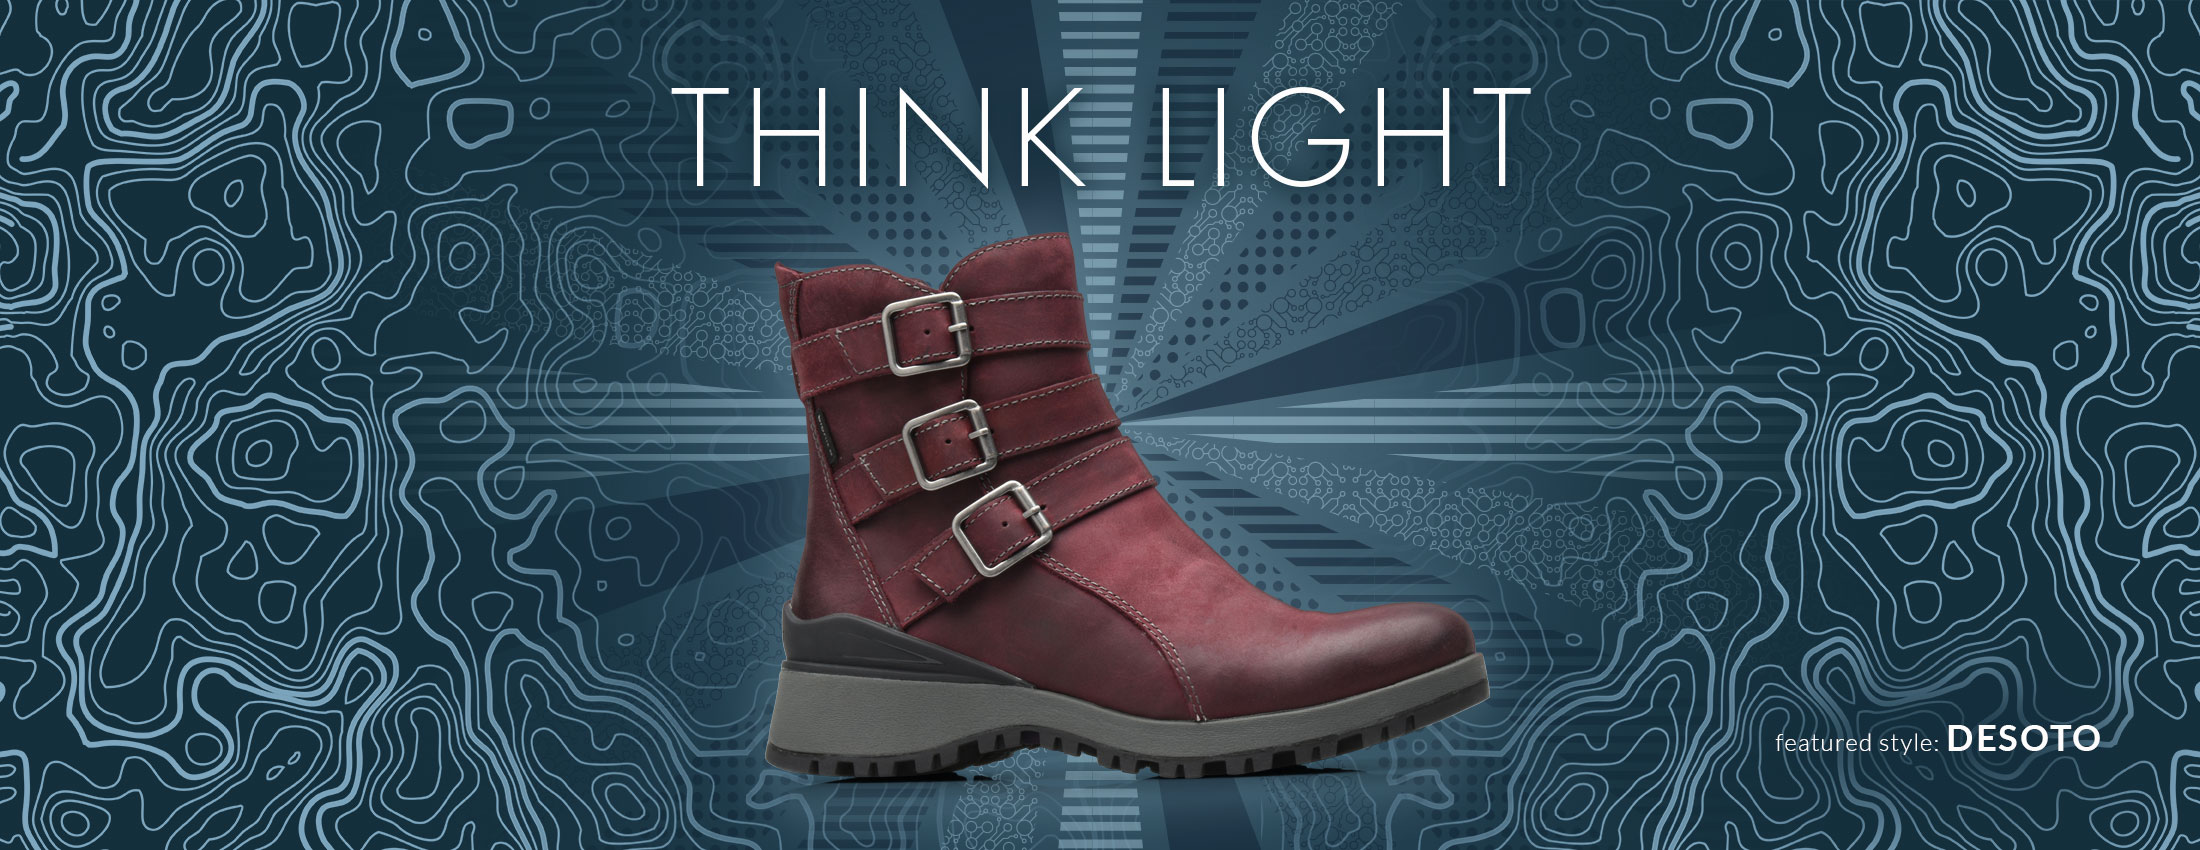 Think Light. Featured style: Desoto boot, shown in eggplant purple